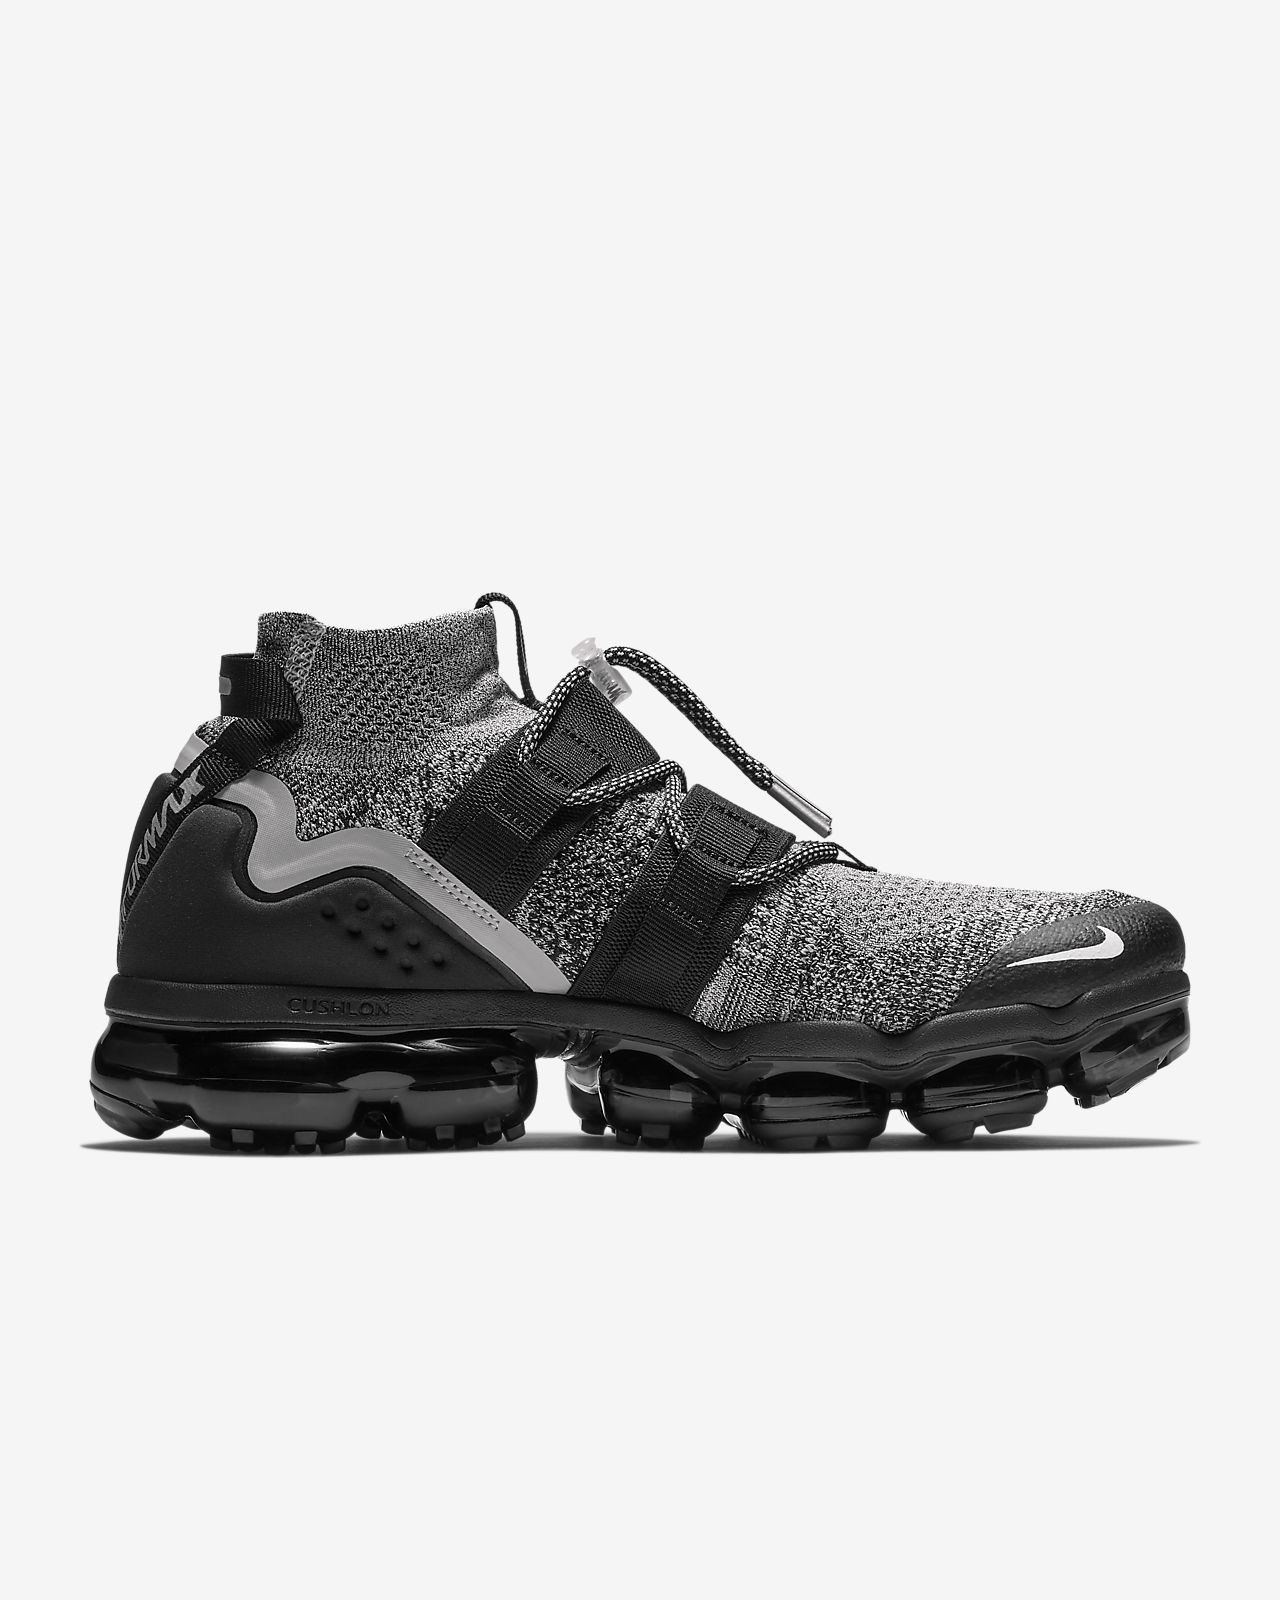 new concept 5a406 87928 ... Nike Air VaporMax Flyknit Utility Shoe